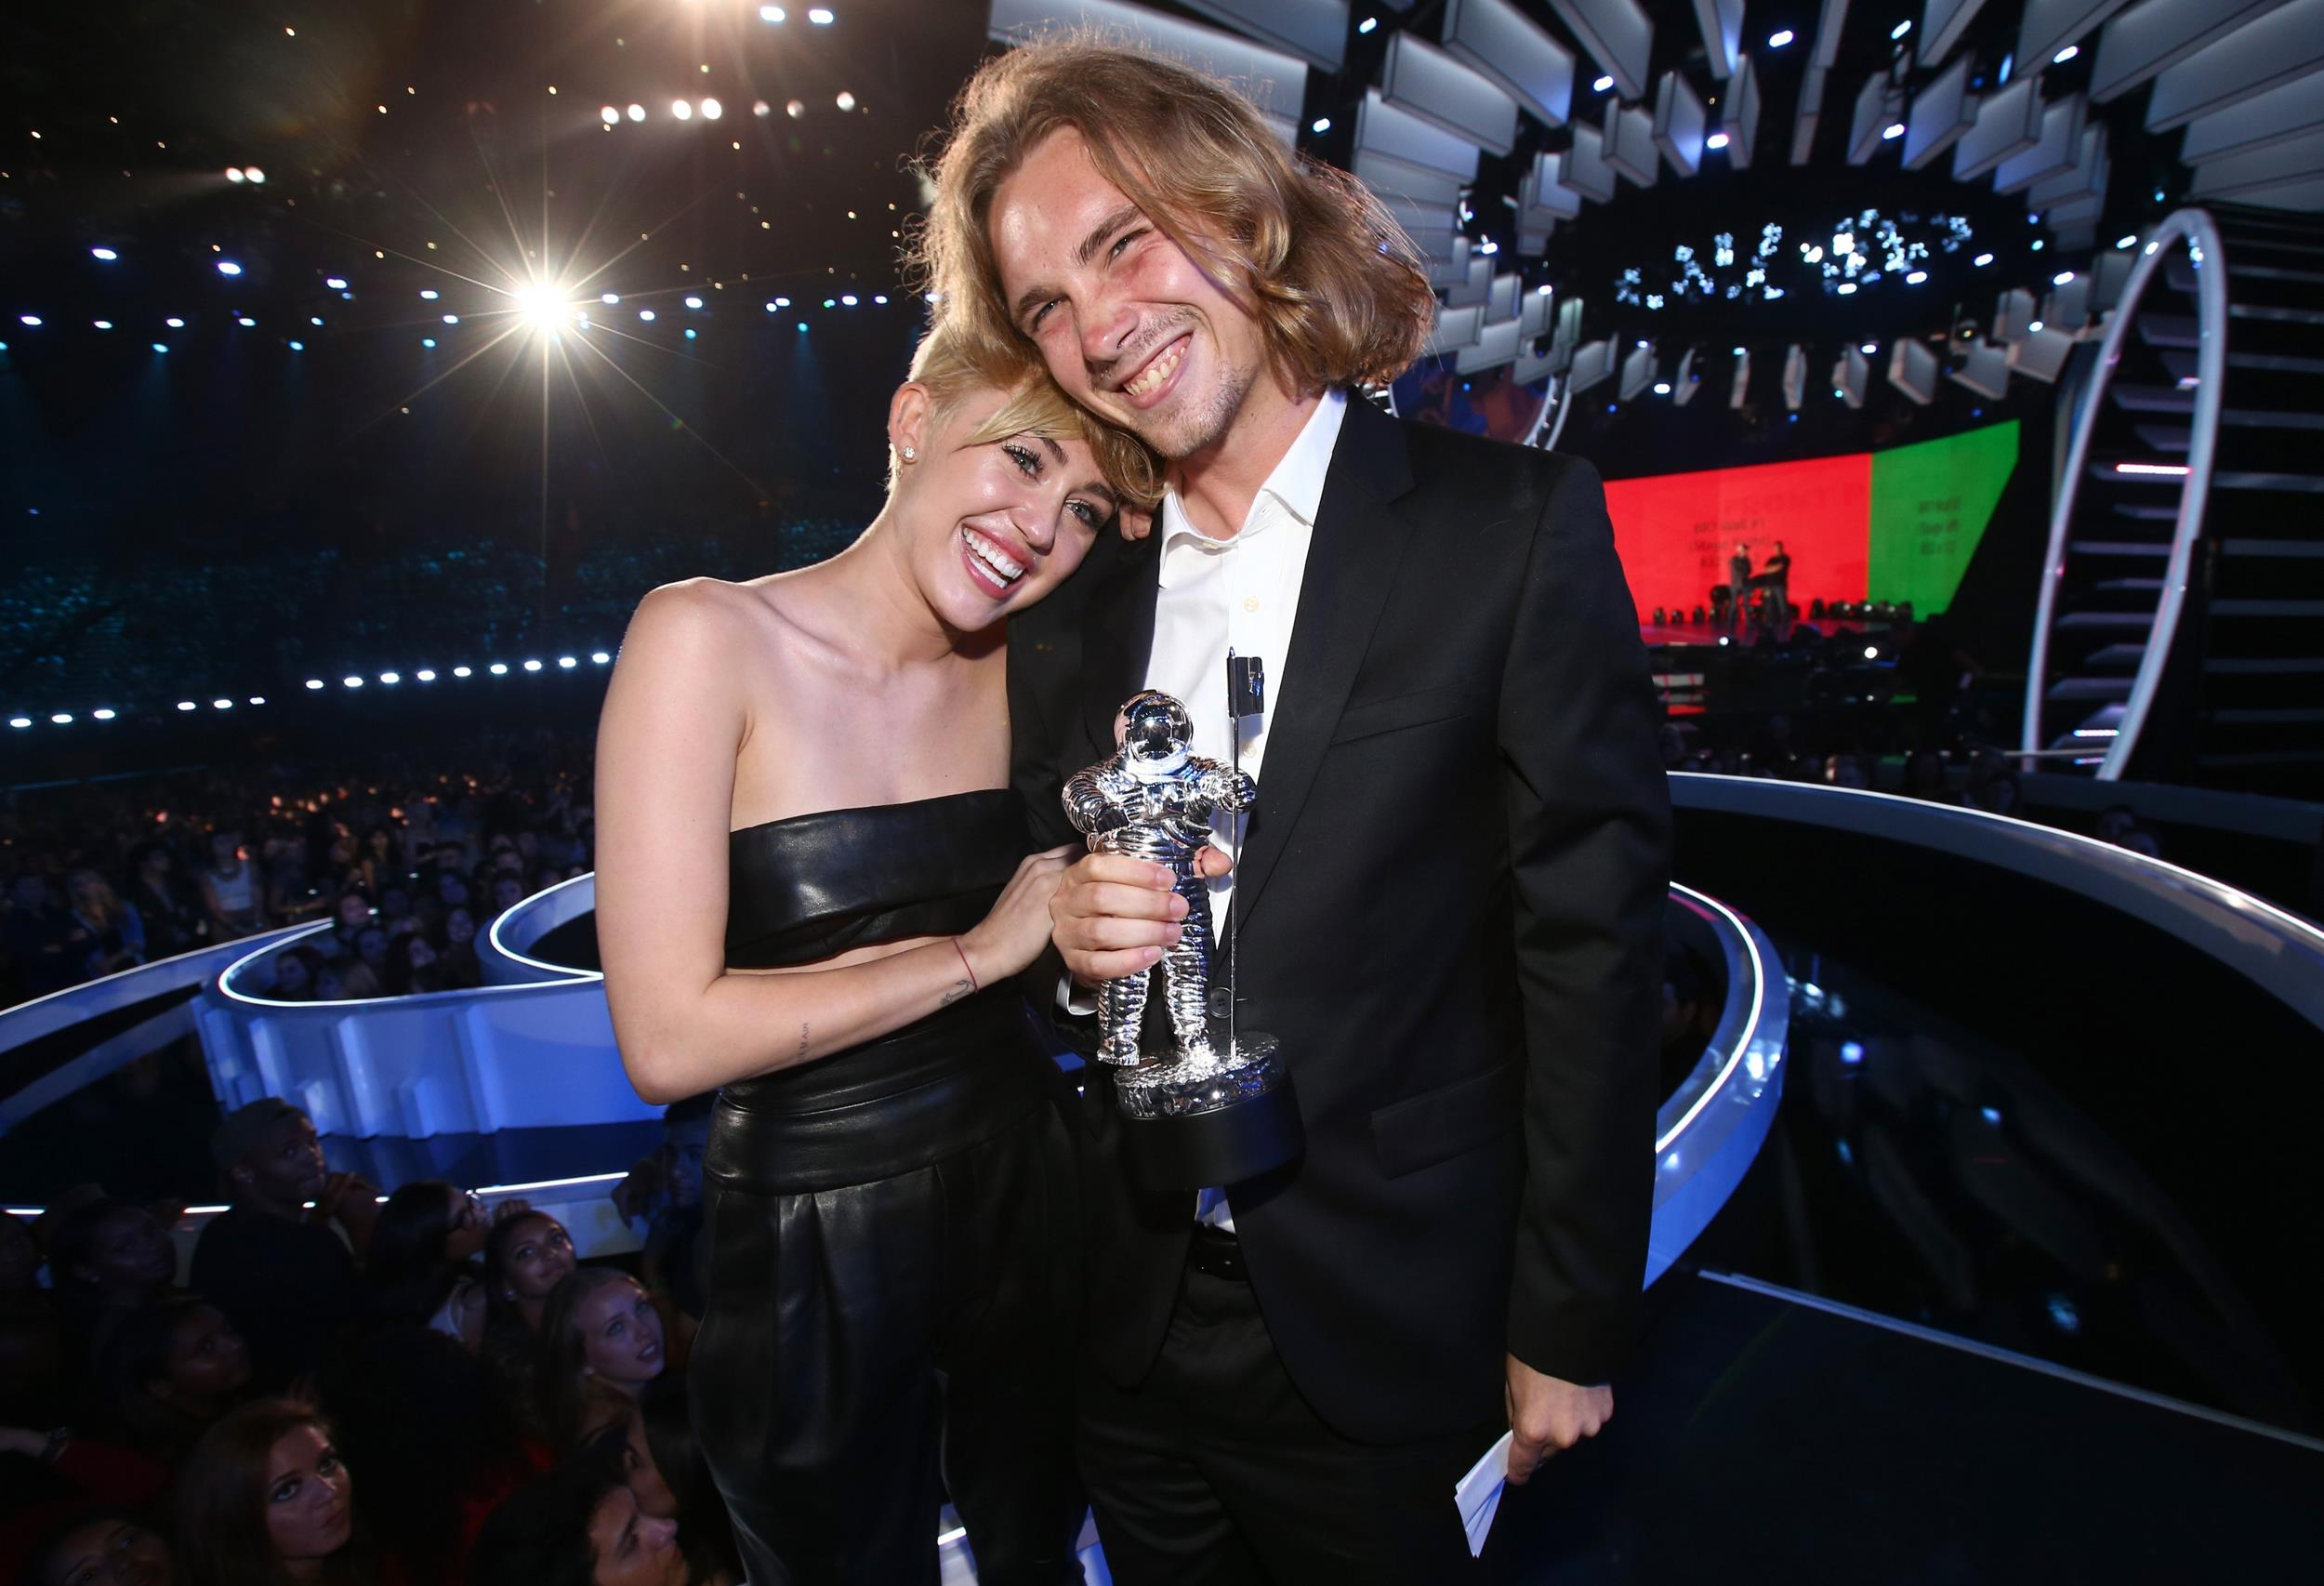 Image: Singer Miley Cyrus and Jesse